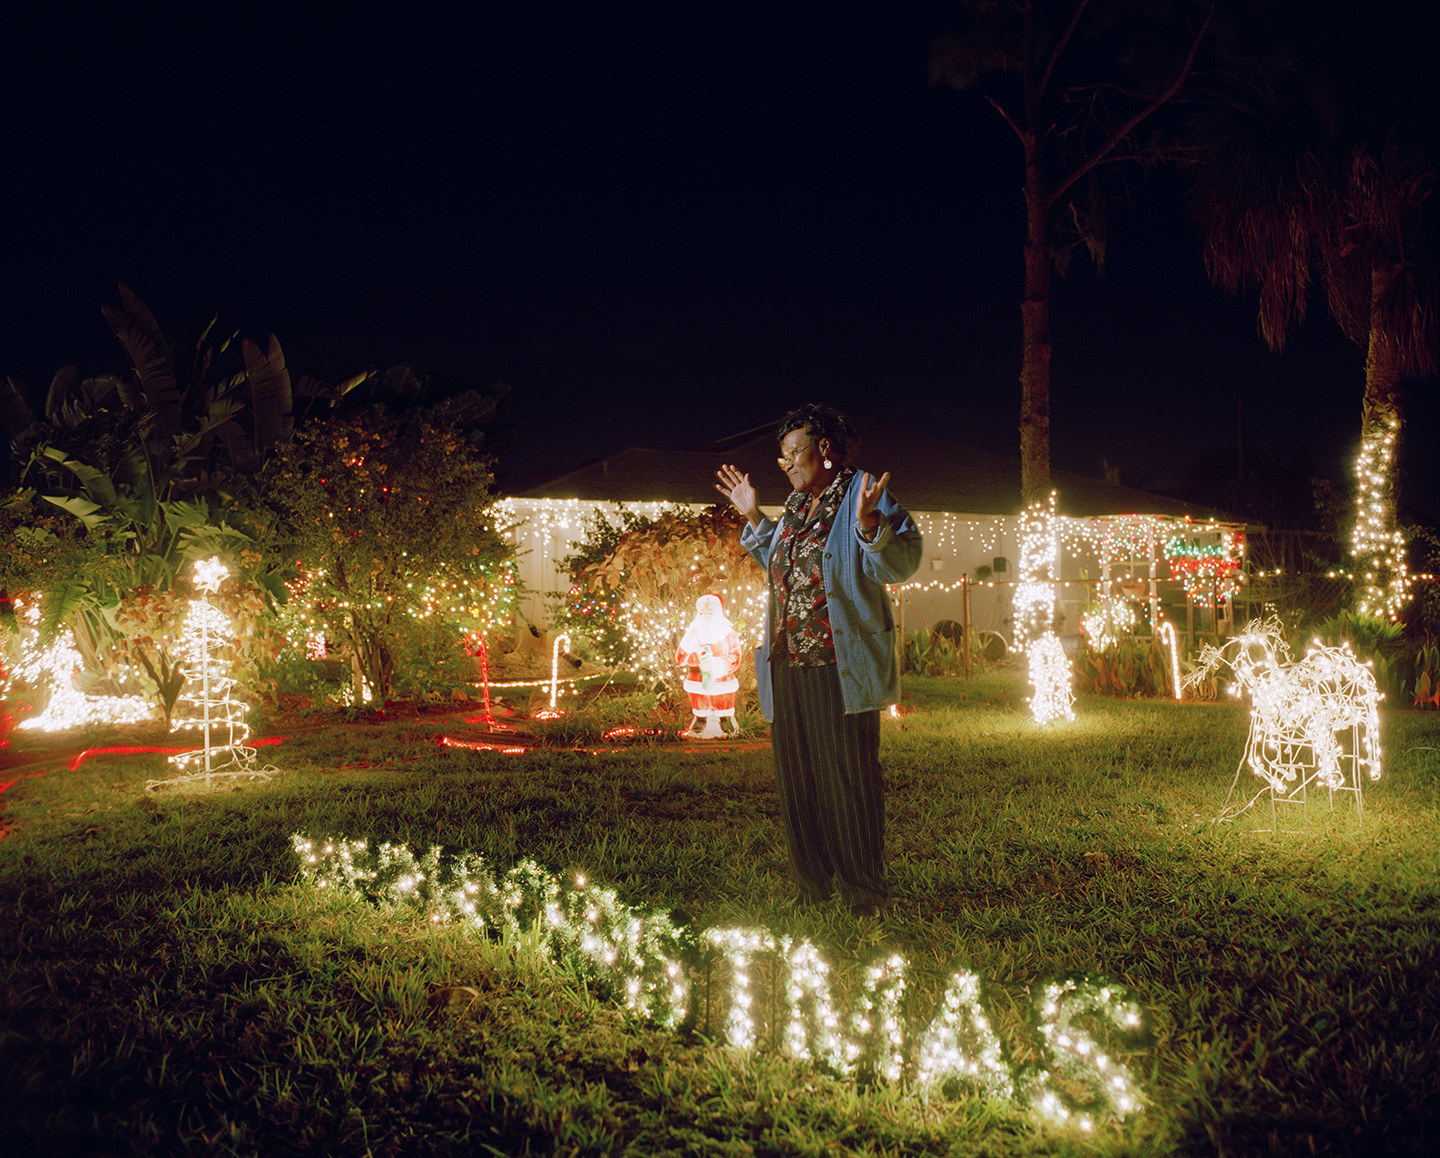 A woman on her lawn surrounded by Christmas ornaments